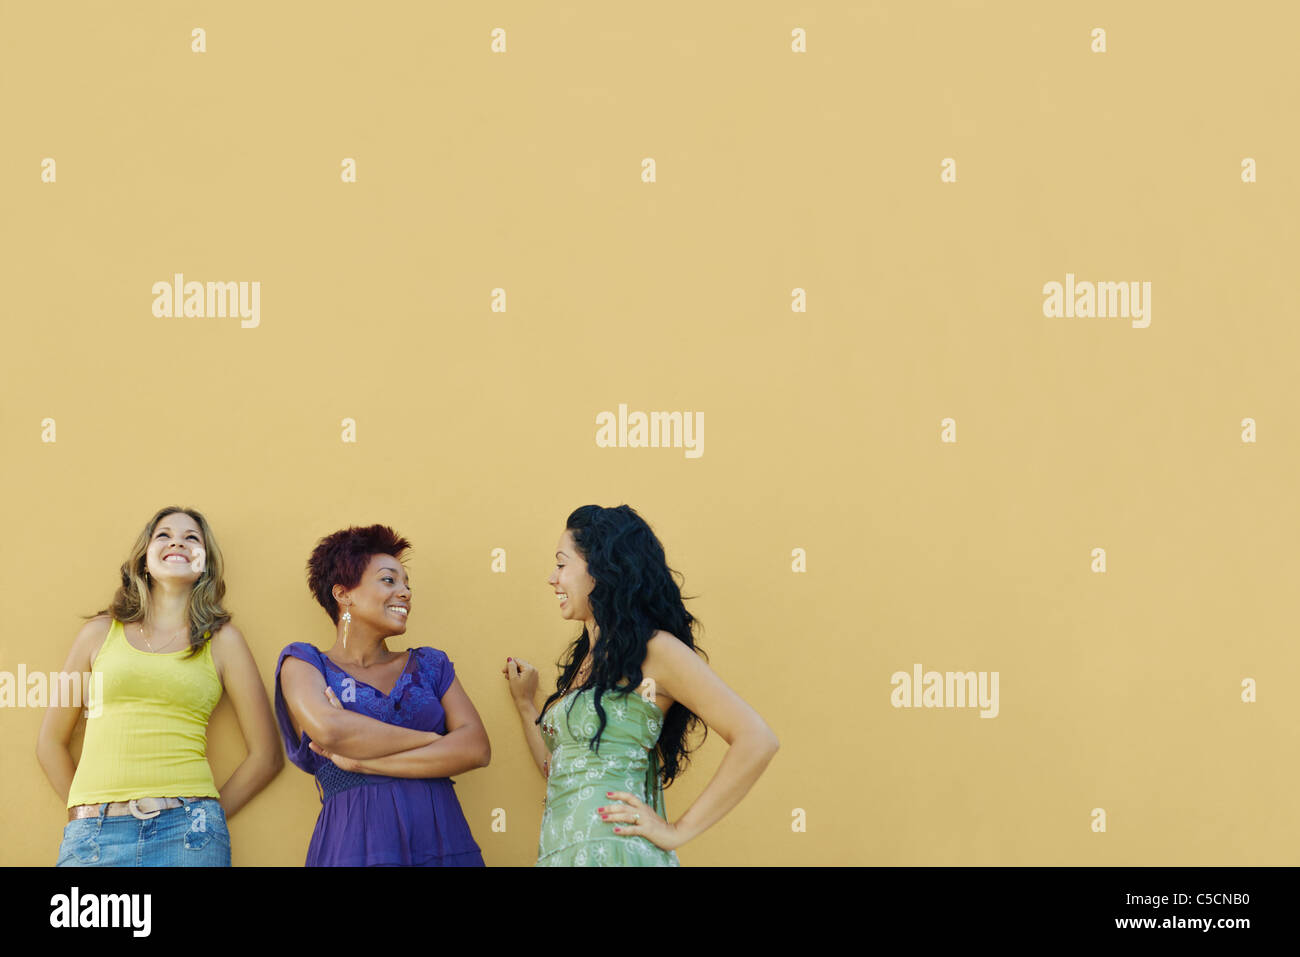 group of three female hispanic friends leaning on yellow wall and laughing. Horizontal shape, waist up, copy space Stock Photo